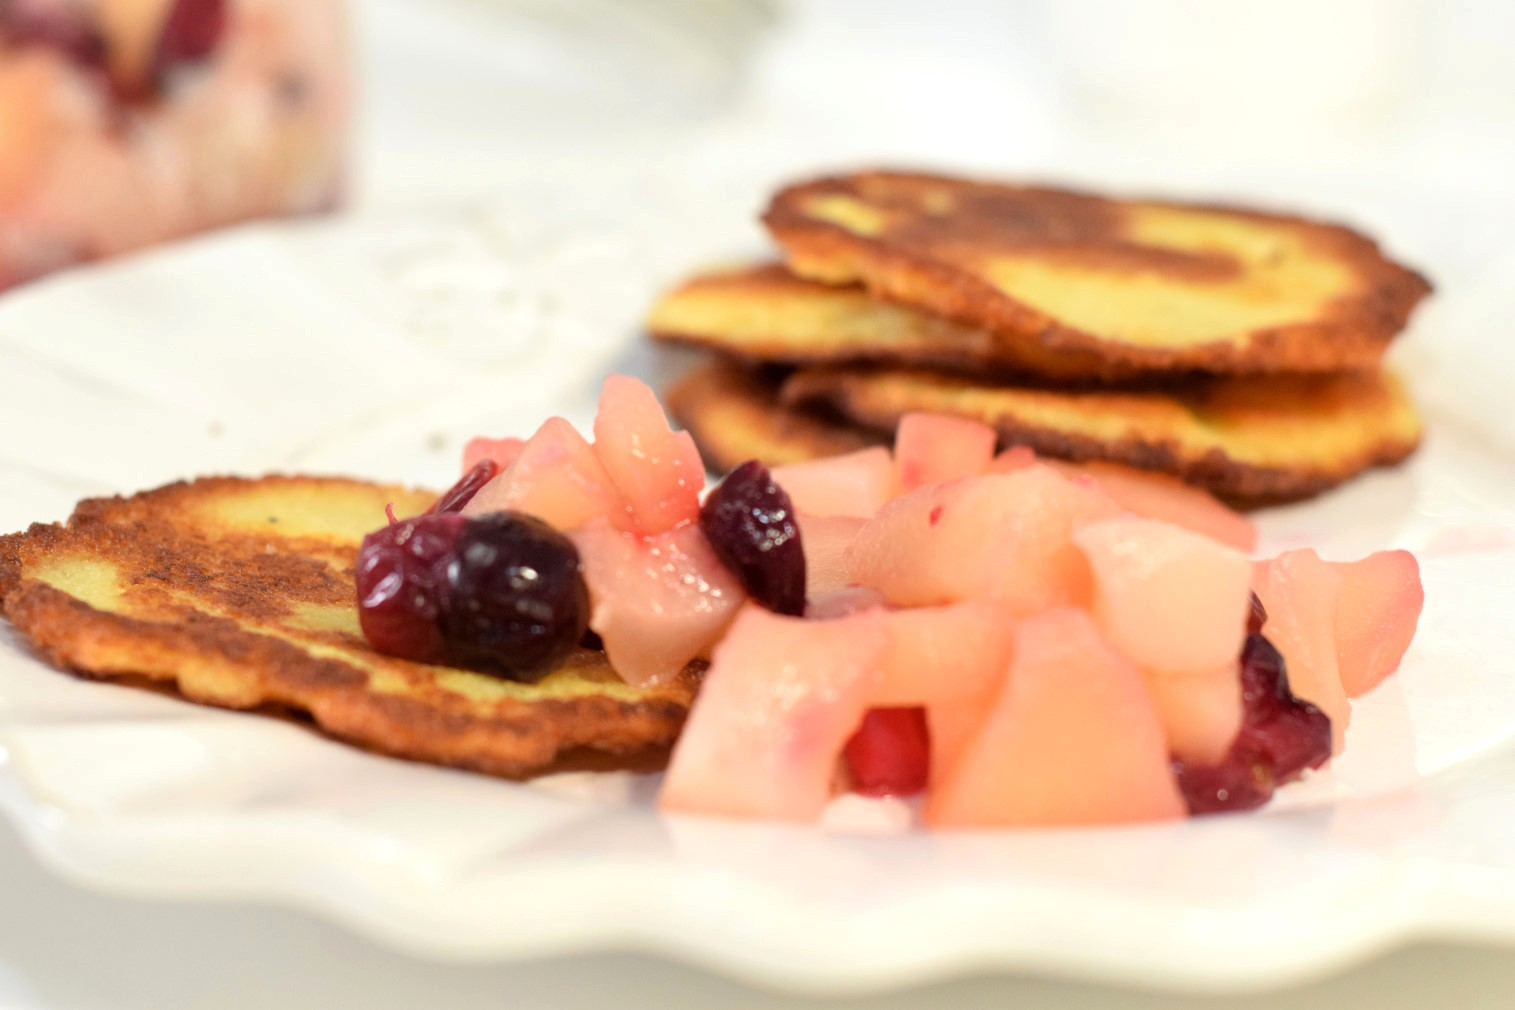 Polish potato pancakes with fruit saute recipe03